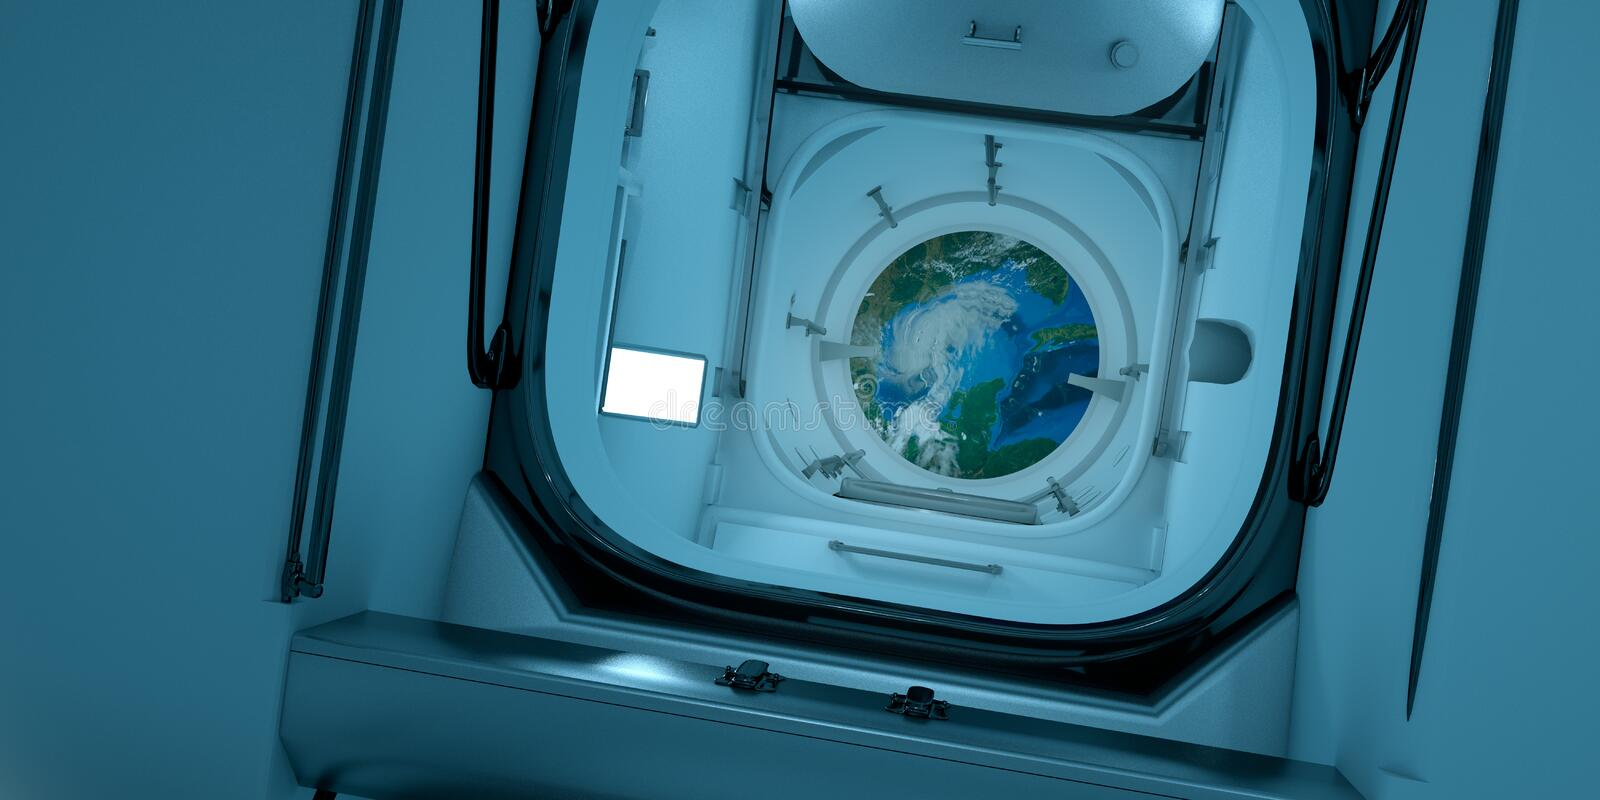 Extremely detailed and realistic high resolution 3D illustration of the ISS - International Space Station Interior. vector illustration